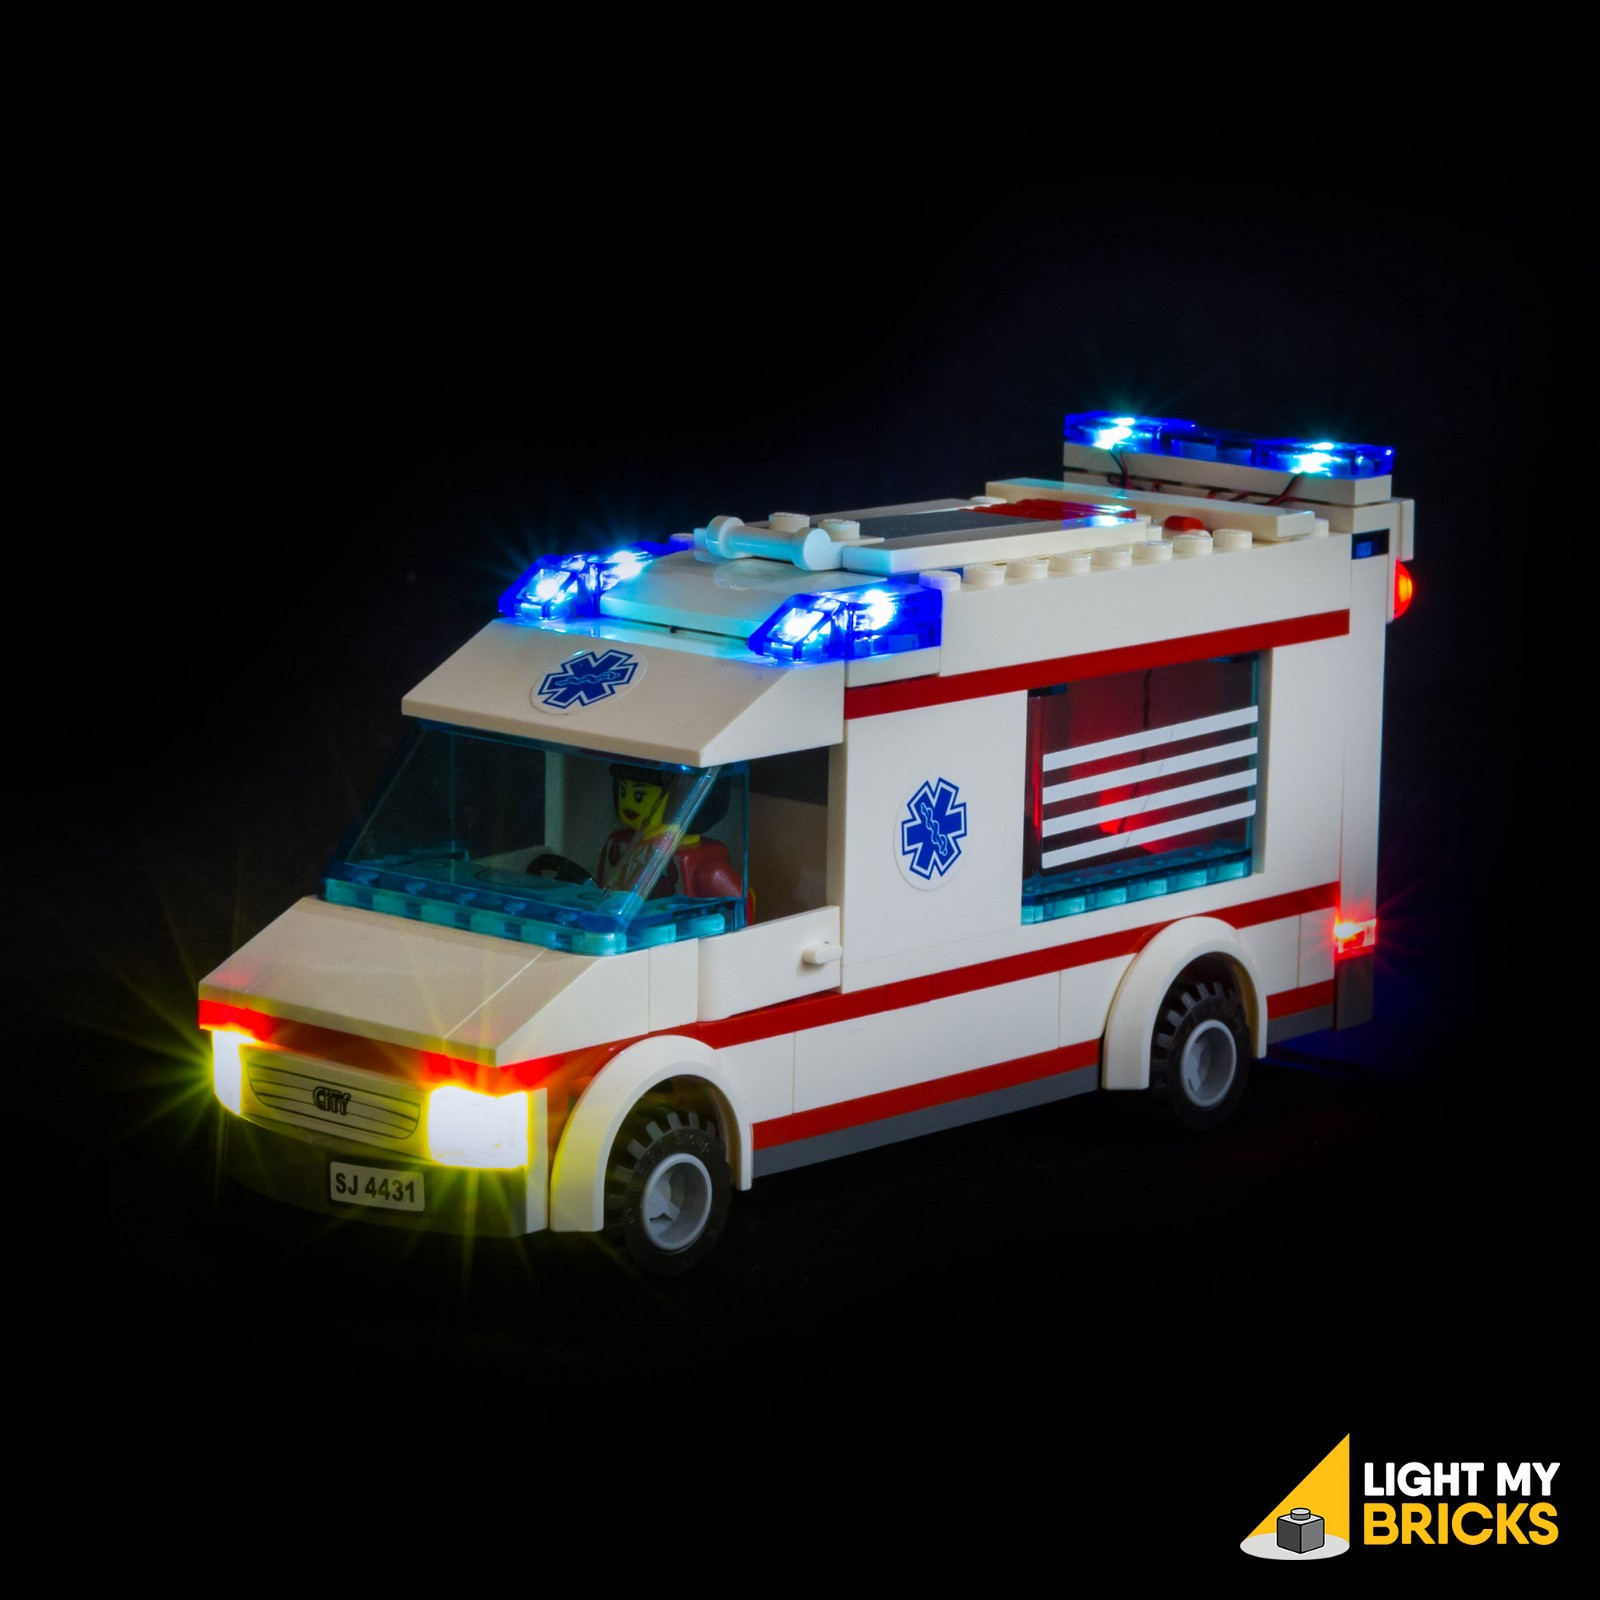 Light my bricks city ambulance lighting kit light my bricks medium - Lego ambulance ...